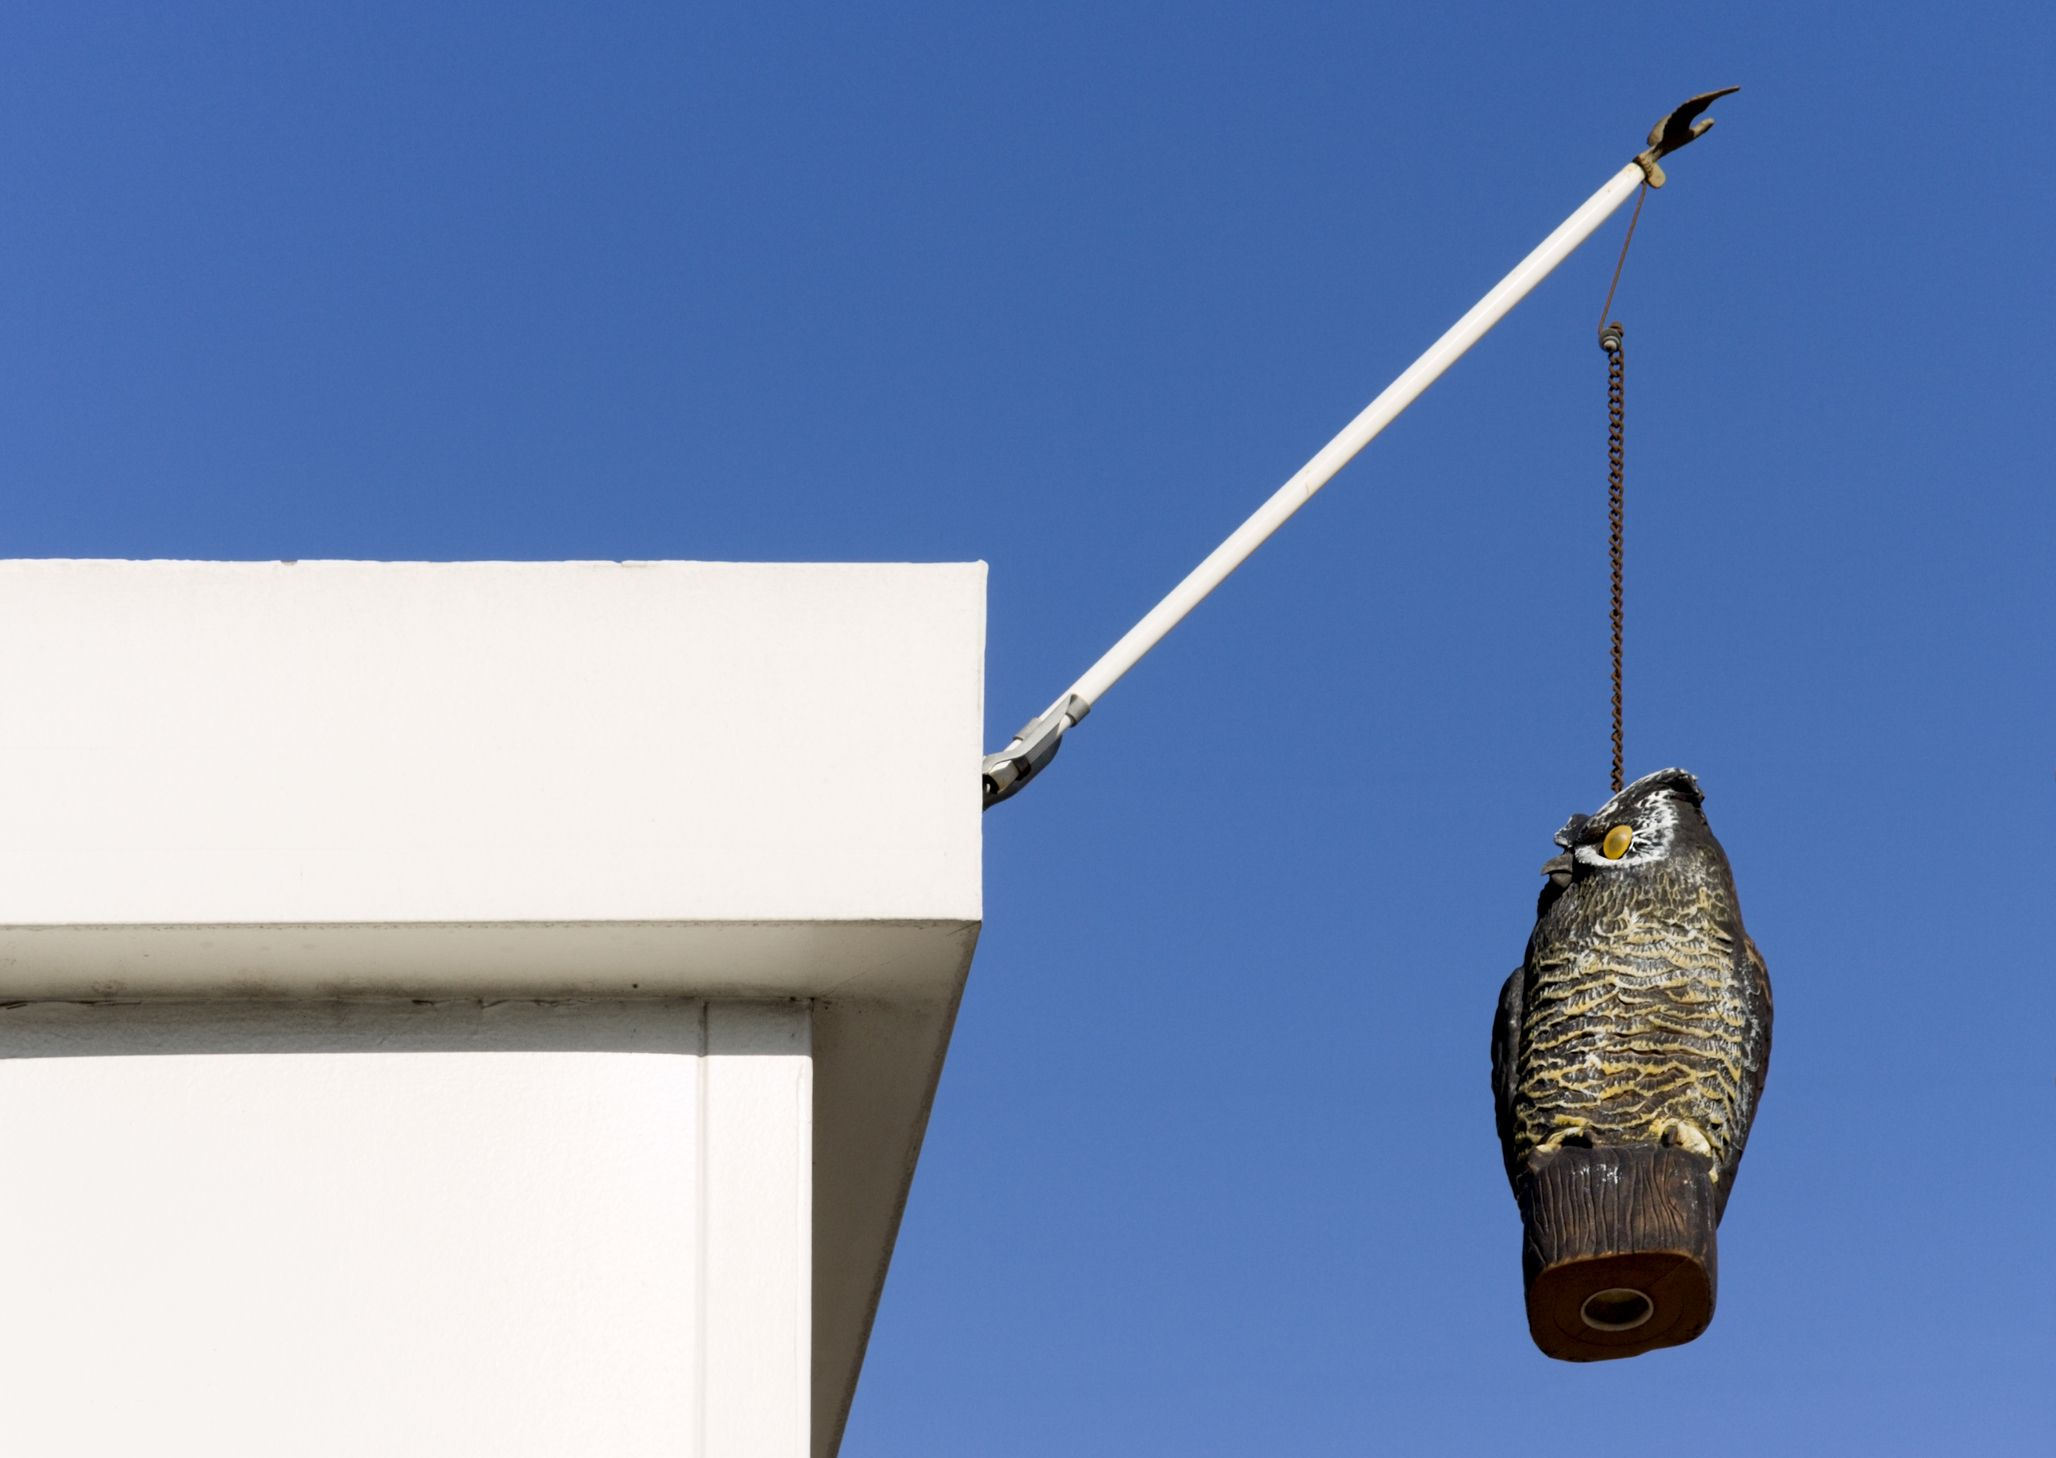 Owl decoy hanging from a chain so it moves in the wind